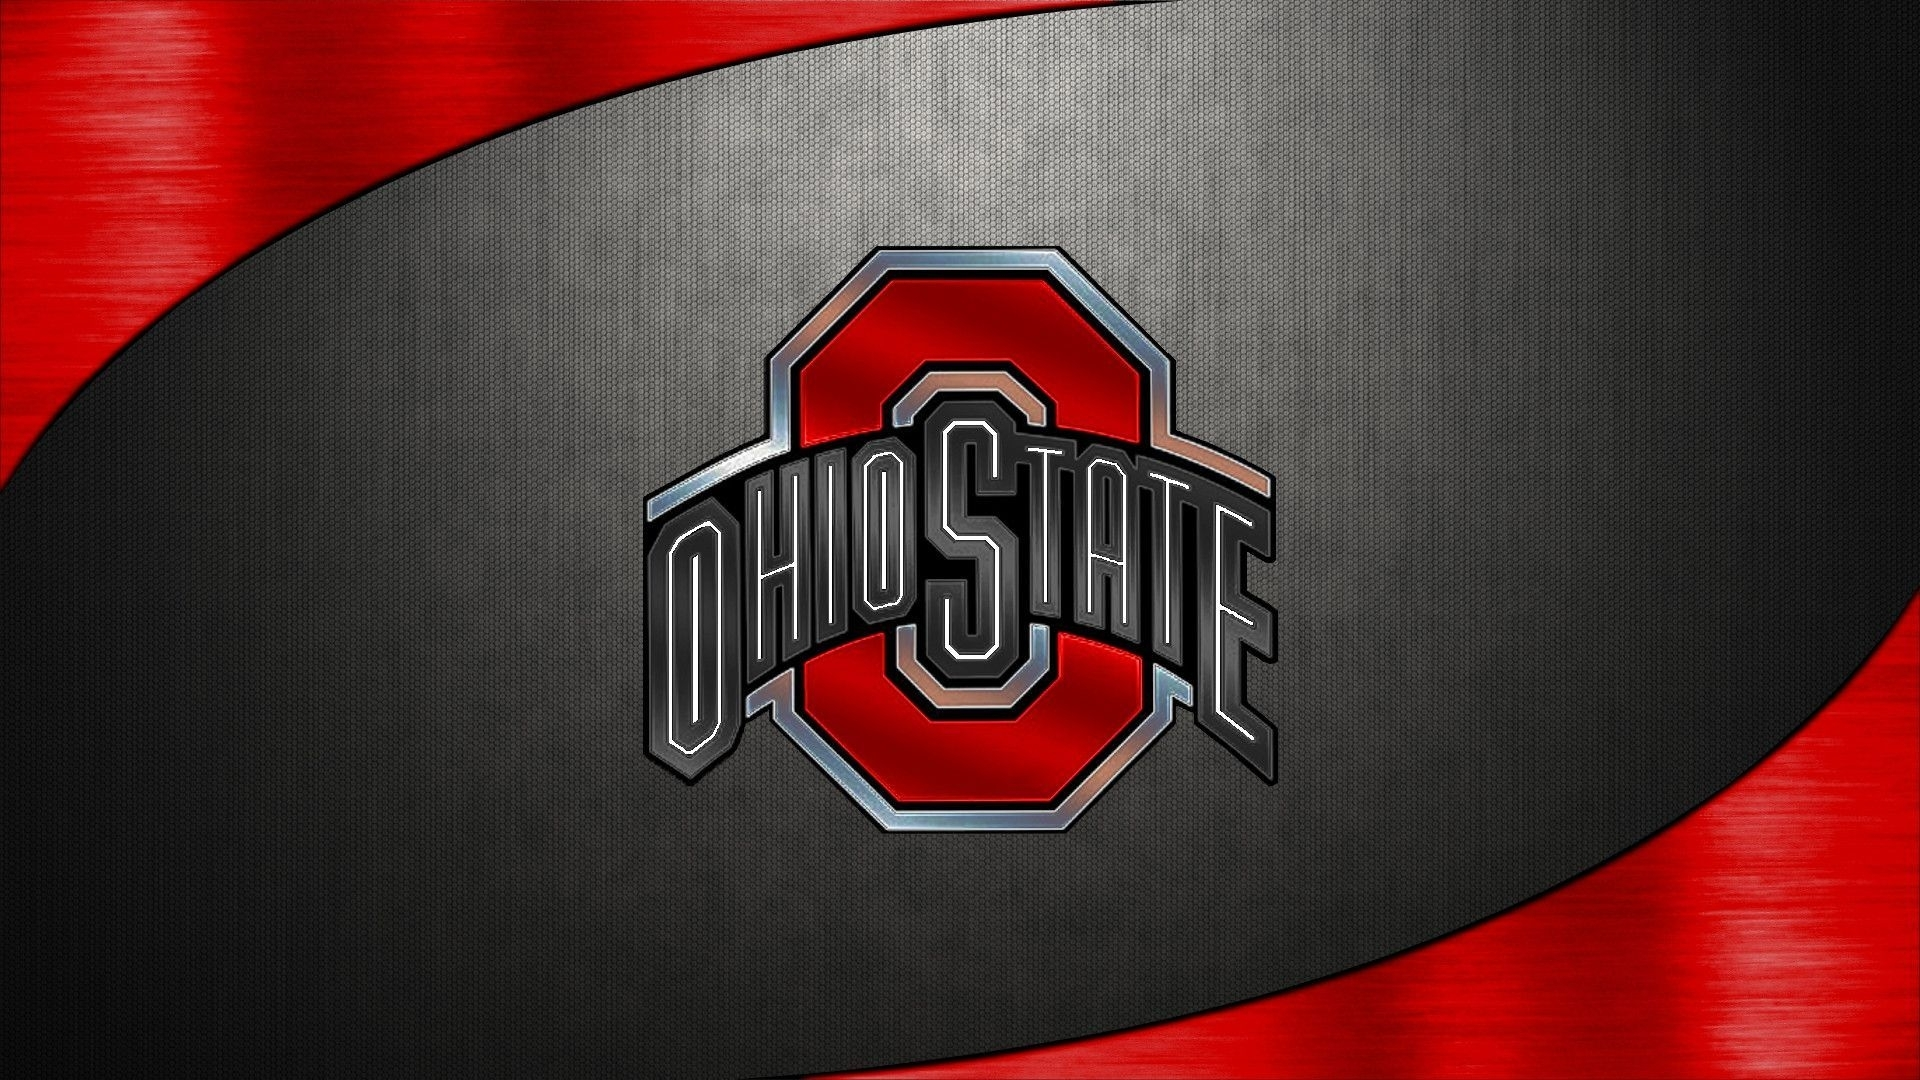 images ohio state logo wallpapers - media file | pixelstalk